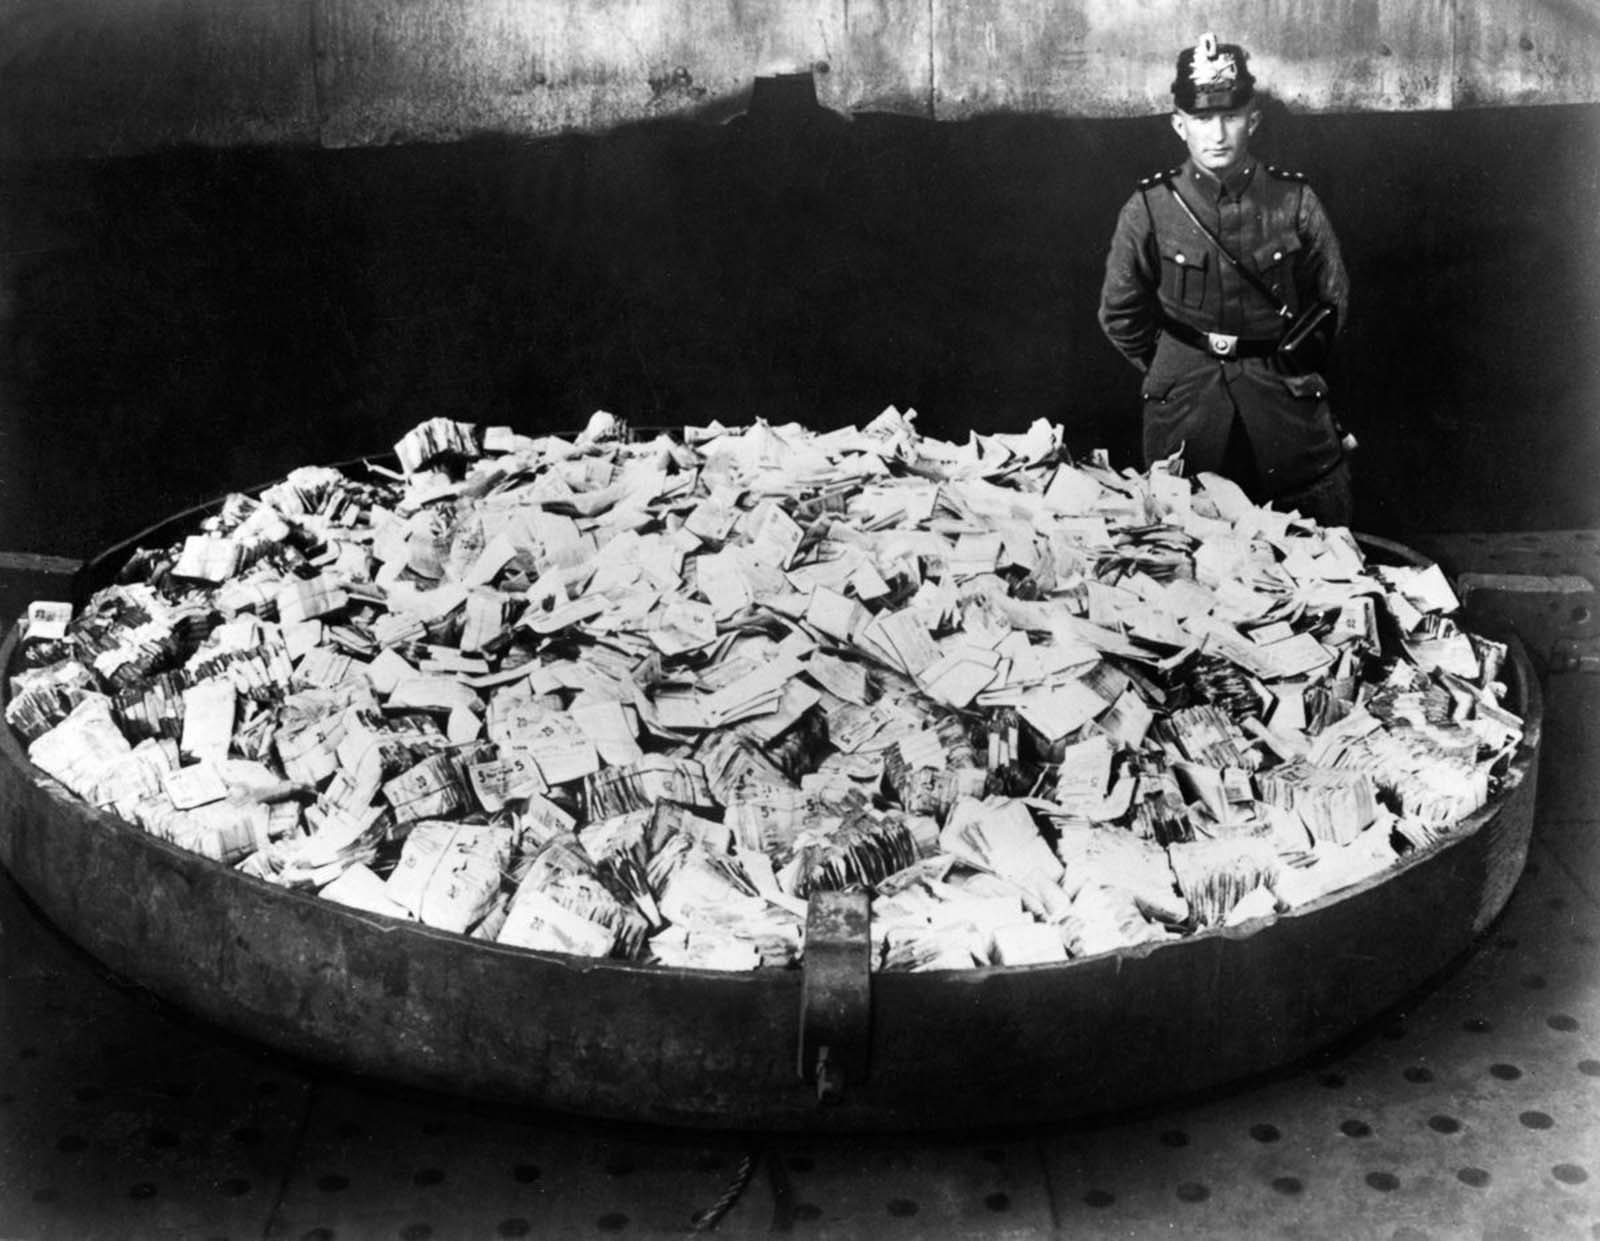 Worthless banknotes are collected to be burned. 1923.